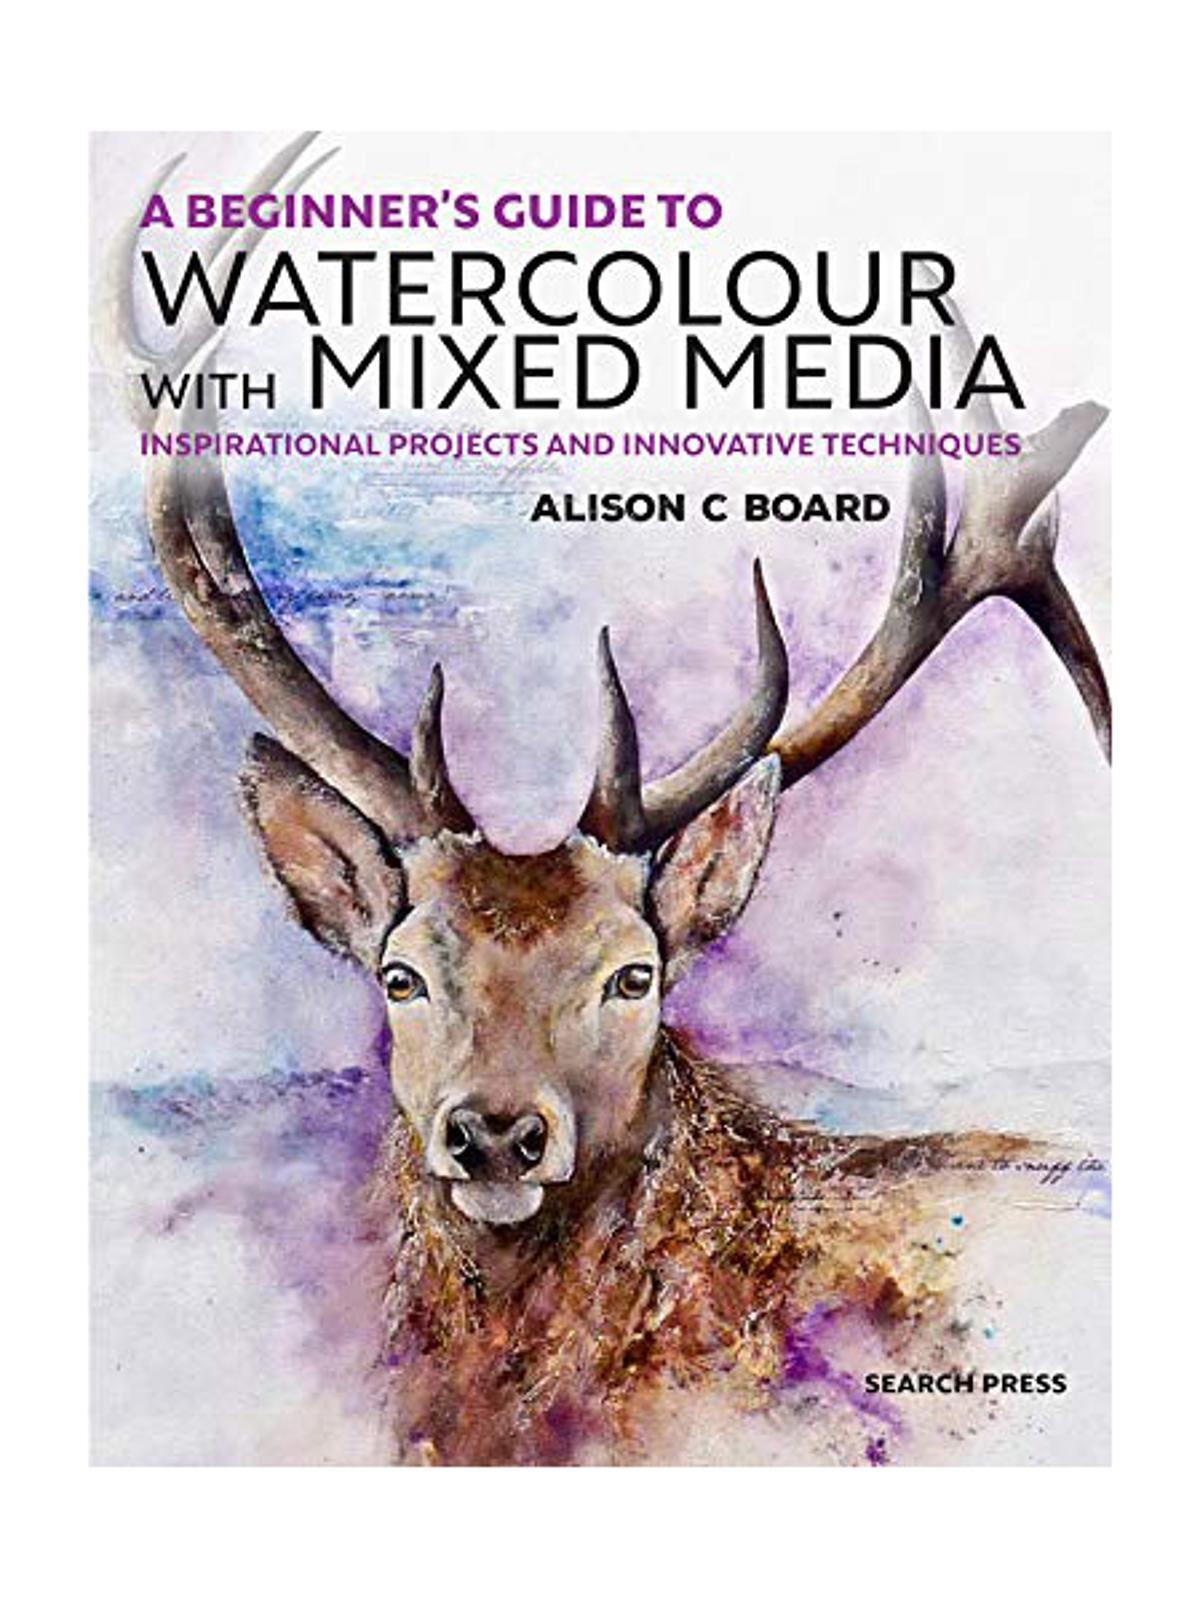 A Beginner's Guide to Watercolour with Mixed Media